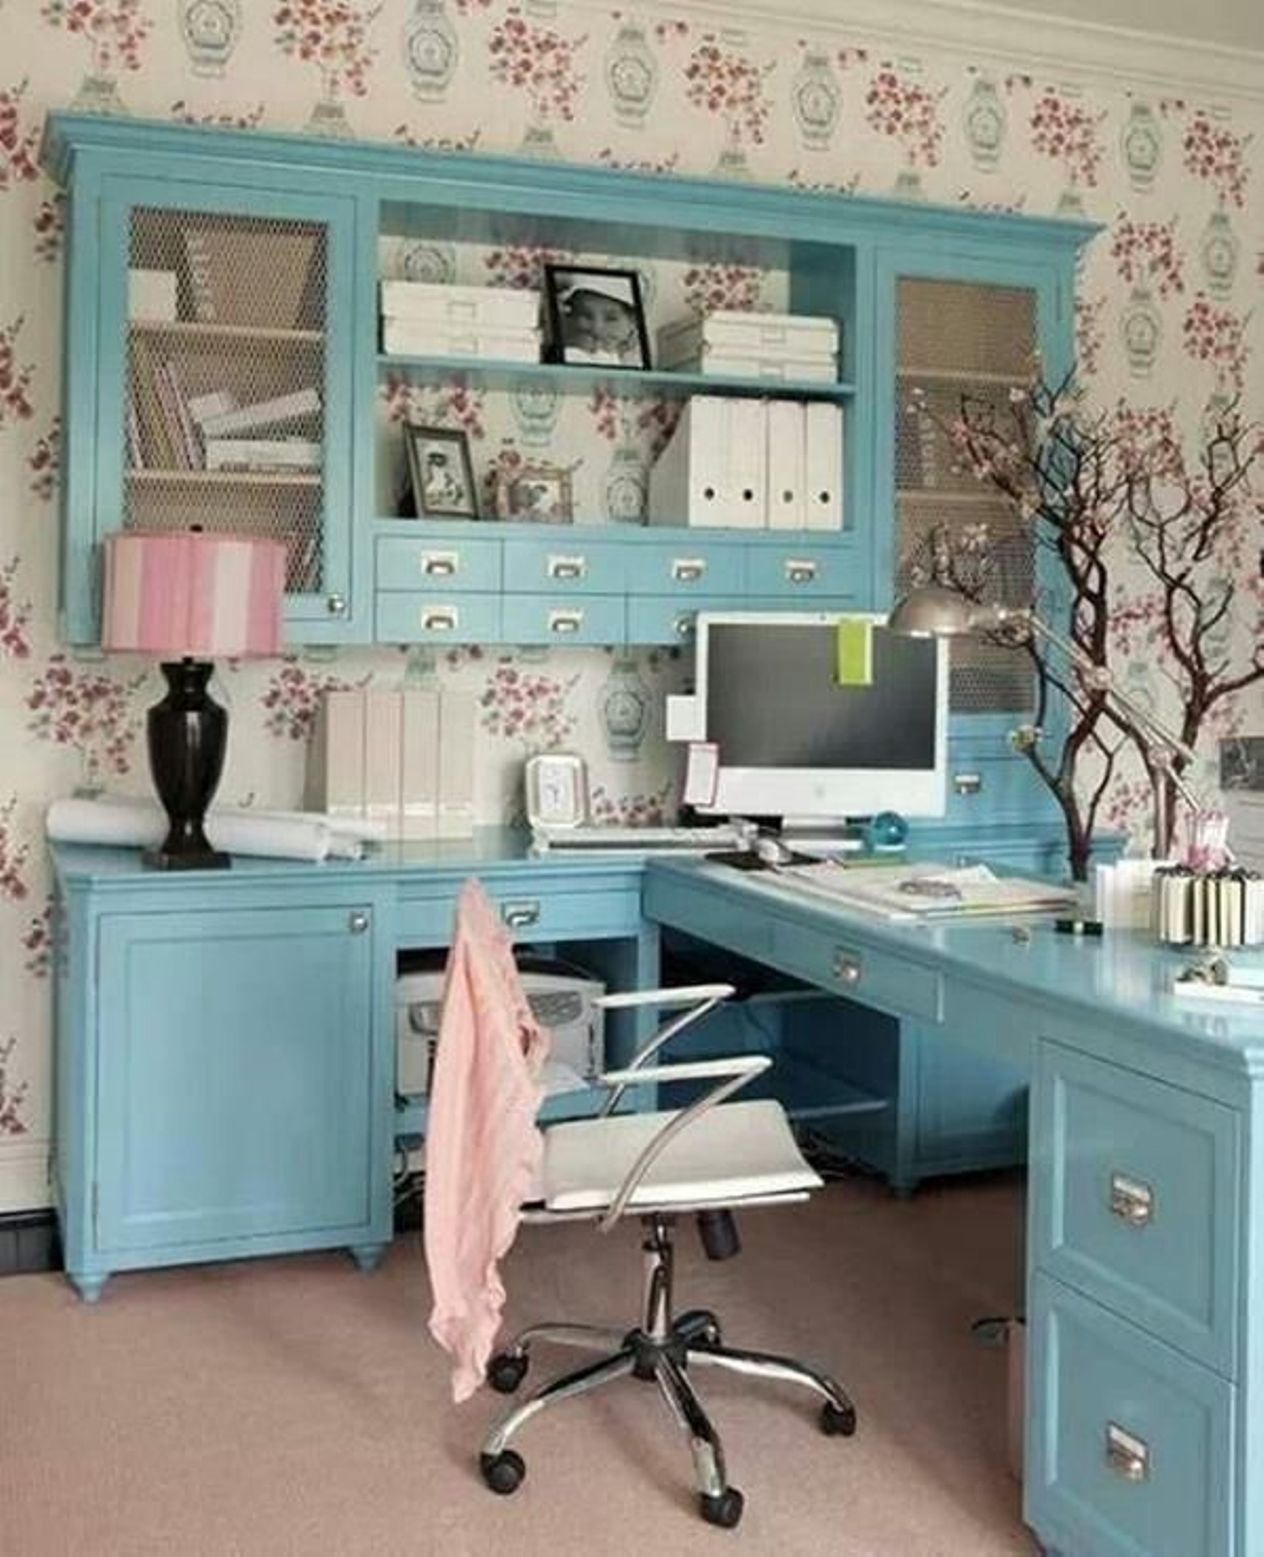 21 Feminine Home Office Designs Decorating Ideas: This Elegant Feminine Home Office Decor Is Correlated With